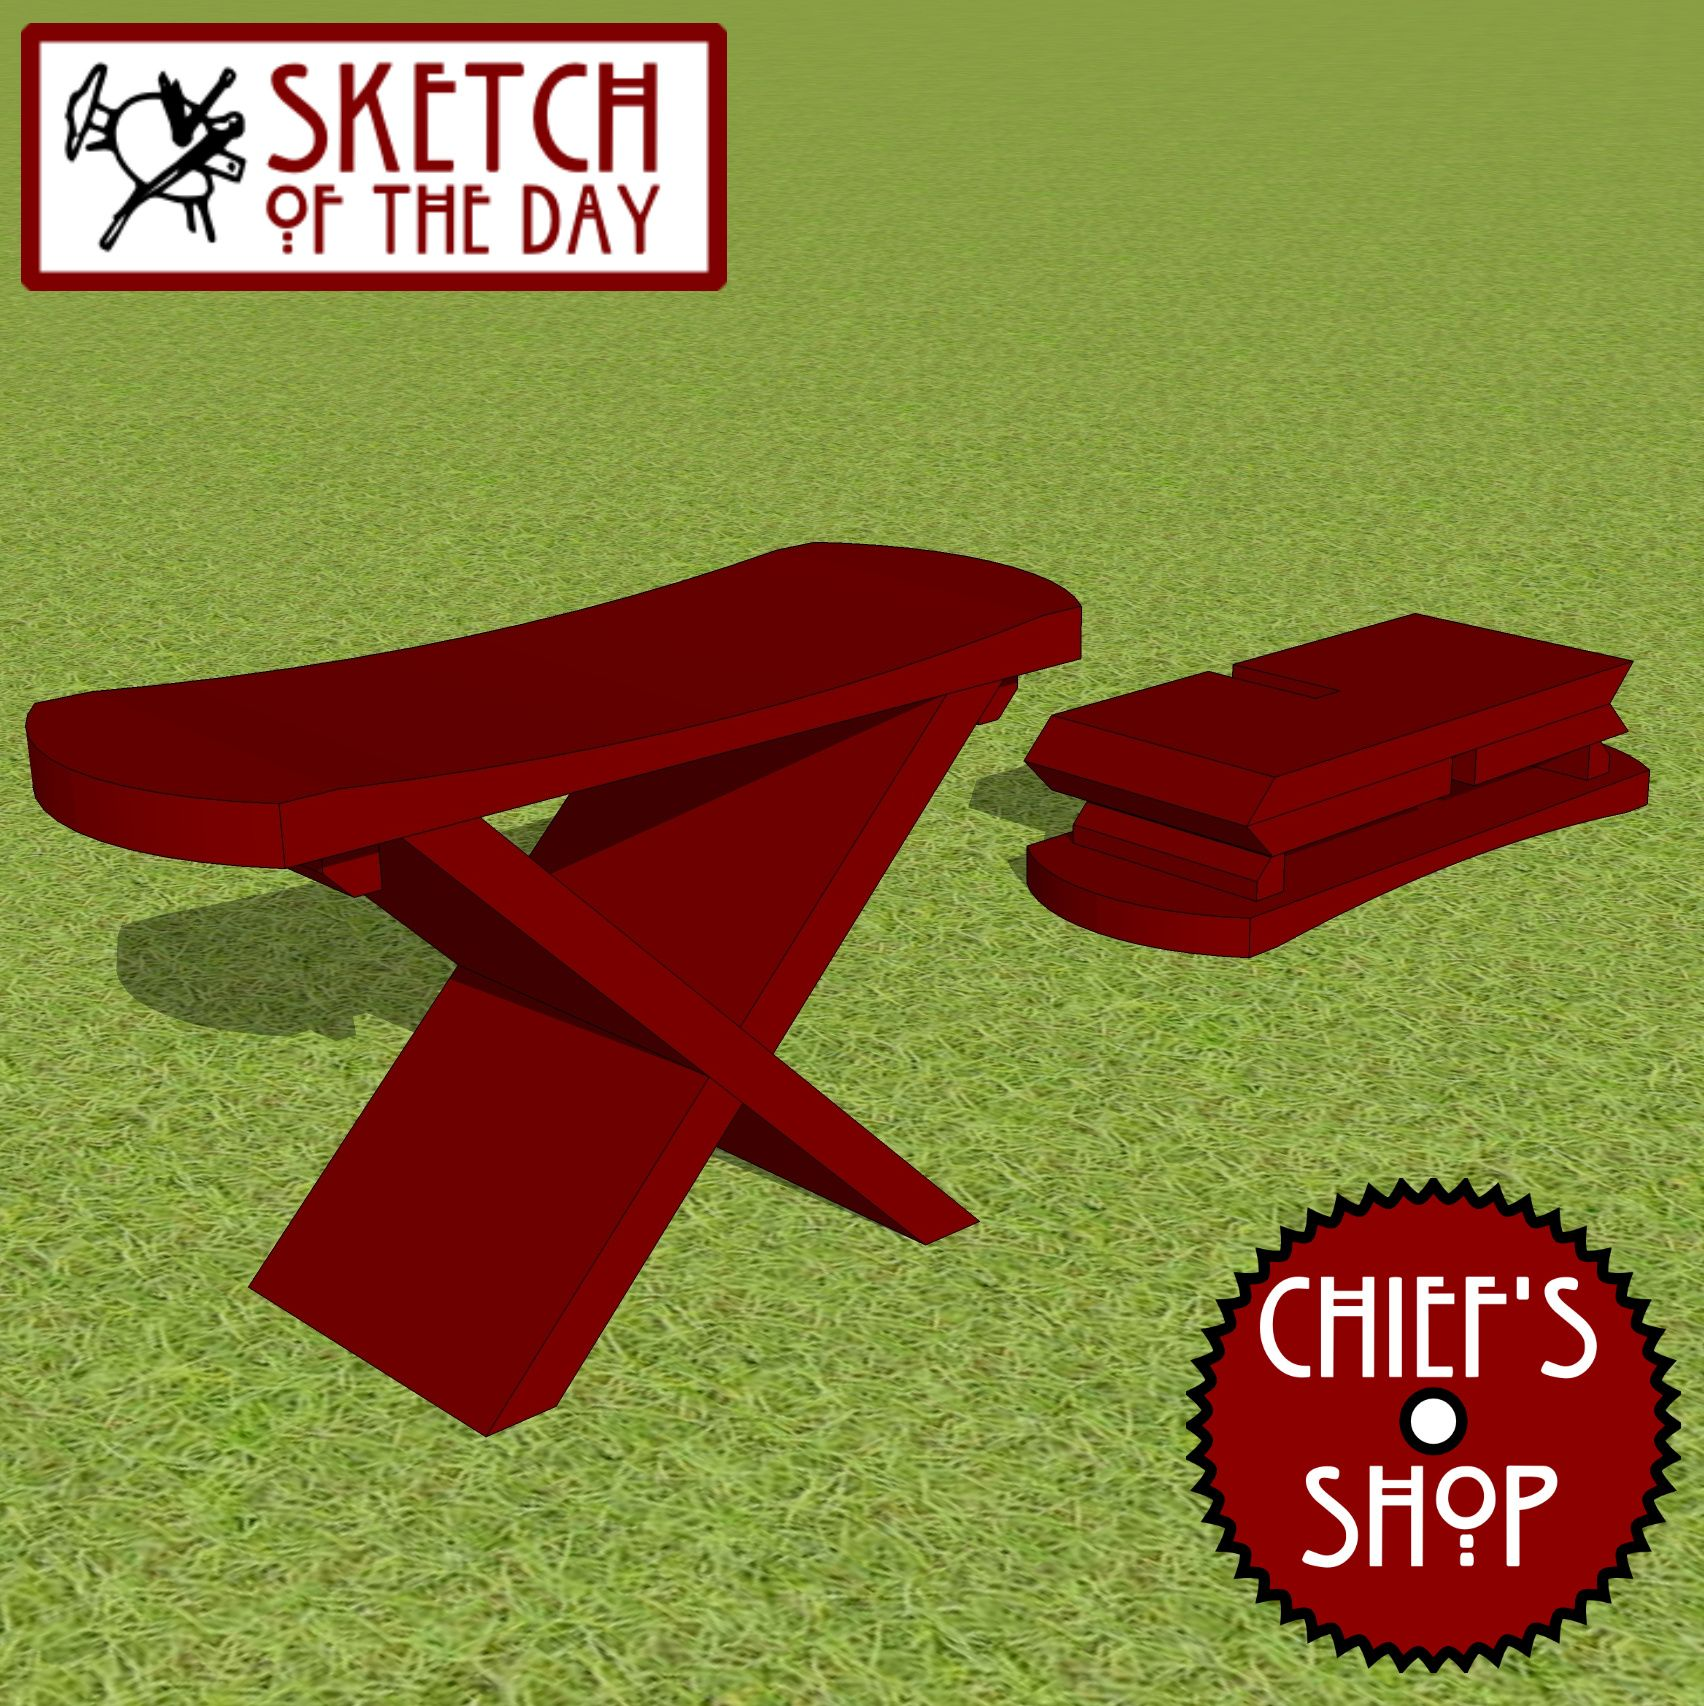 Pleasant Sketch Of The Day Knock Down Stool Woodworking Chiefsshop Bralicious Painted Fabric Chair Ideas Braliciousco